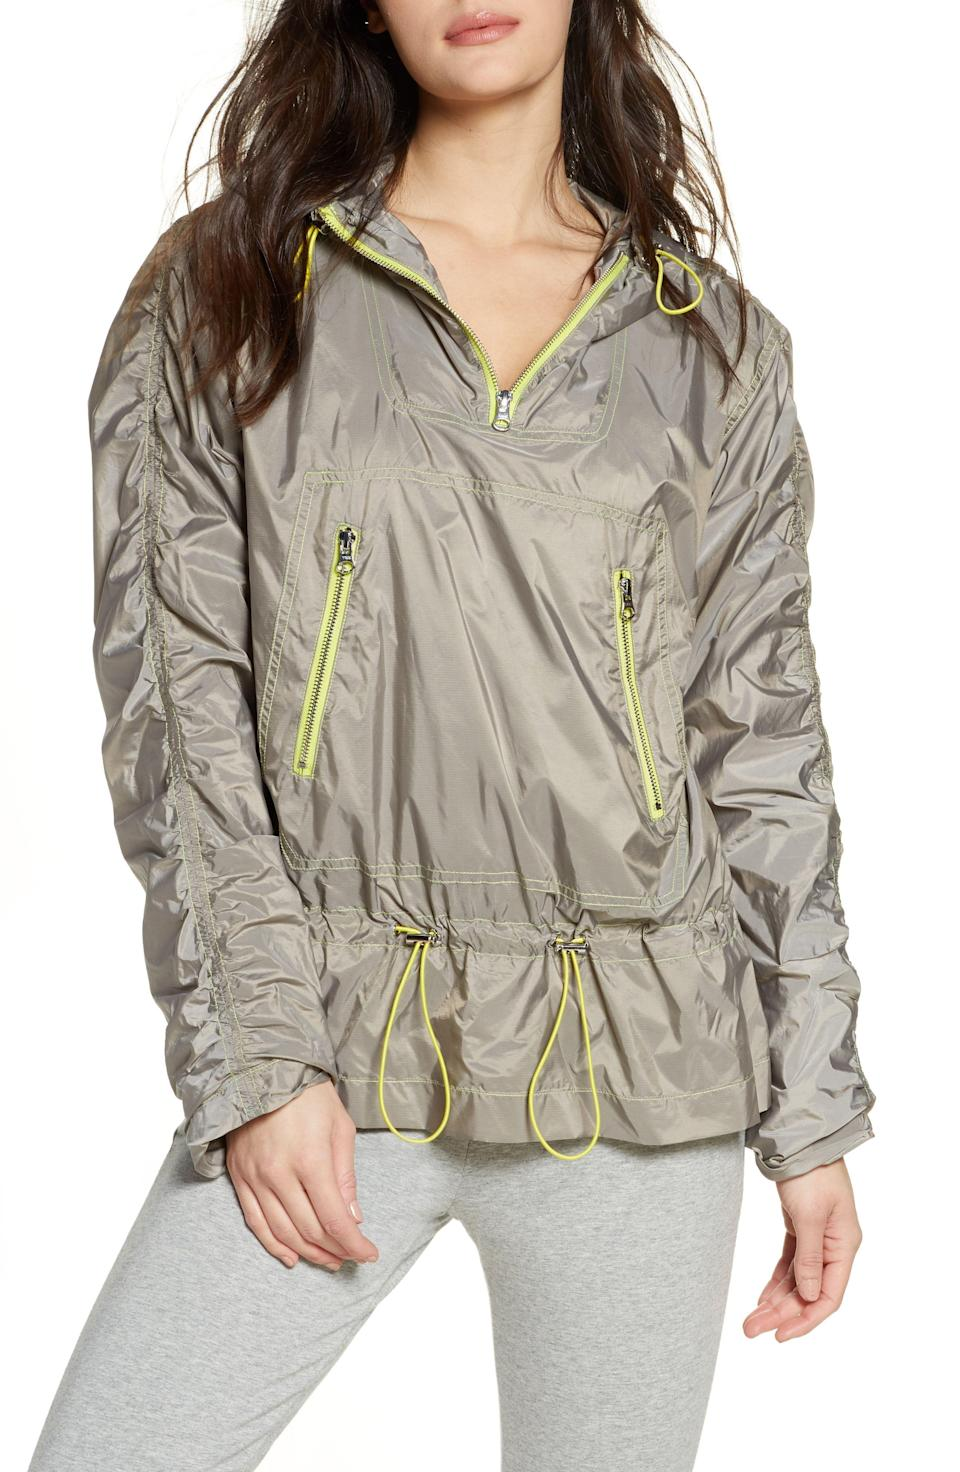 """<p><strong>ZELLA</strong></p><p>nordstrom.com</p><p><strong>$39.98</strong></p><p><a href=""""https://go.redirectingat.com?id=74968X1596630&url=https%3A%2F%2Fshop.nordstrom.com%2Fs%2Fzella-water-resistant-trapeze-anorak%2F5459389&sref=https%3A%2F%2Fwww.goodhousekeeping.com%2Fbeauty%2Ffashion%2Fg32585880%2Frainy-day-outfits%2F"""" rel=""""nofollow noopener"""" target=""""_blank"""" data-ylk=""""slk:Shop Now"""" class=""""link rapid-noclick-resp"""">Shop Now</a></p><p>Wear this water resistant-anorak while running on a drizzly day. It has a hood, zip front pockets, and front toggles to cinch in your waist. </p>"""